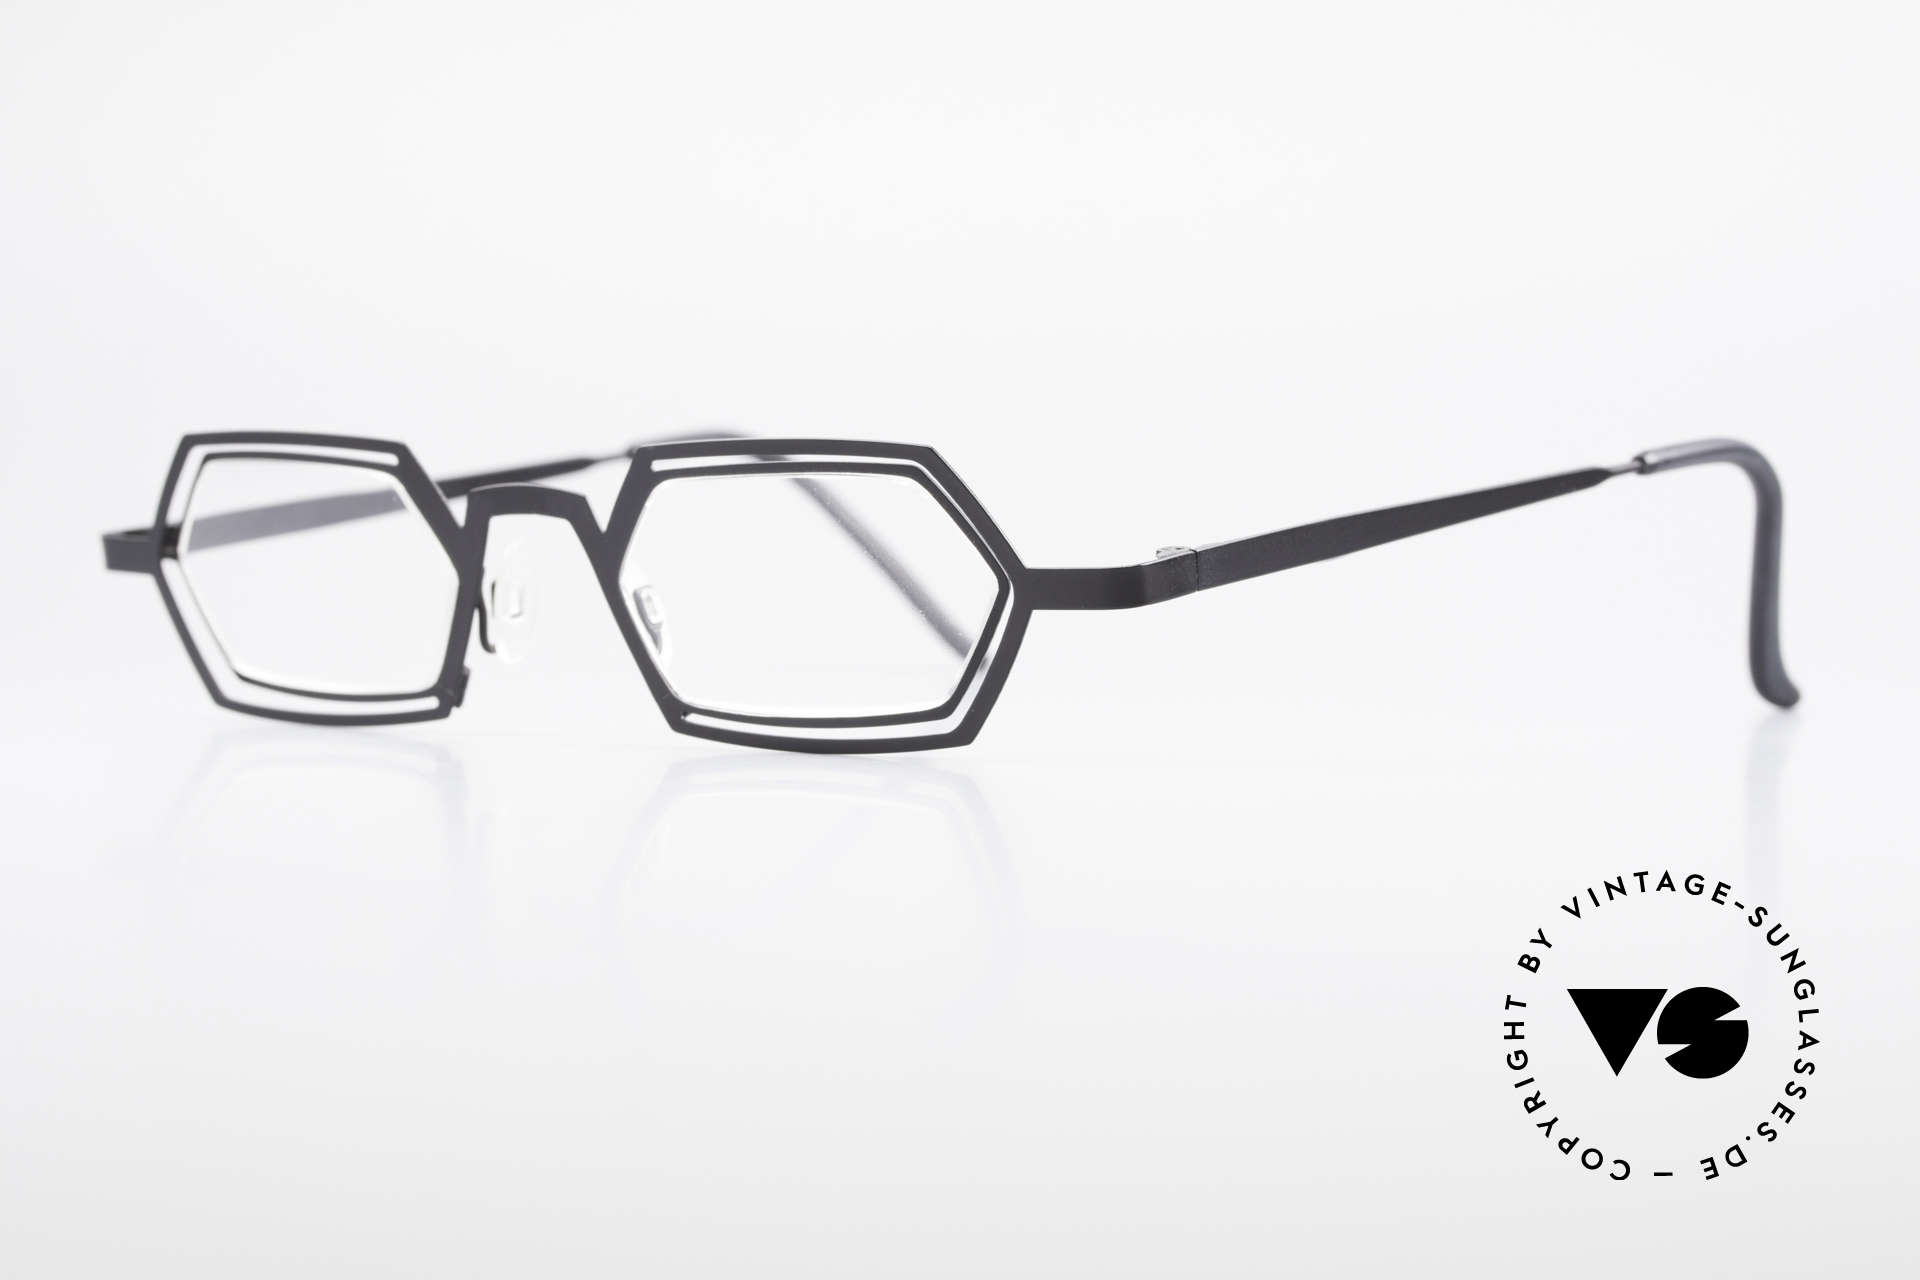 Theo Belgium Reflexs 90's Eyeglasses No Retro Frame, made for the avant-garde, individualists; trend-setters, Made for Men